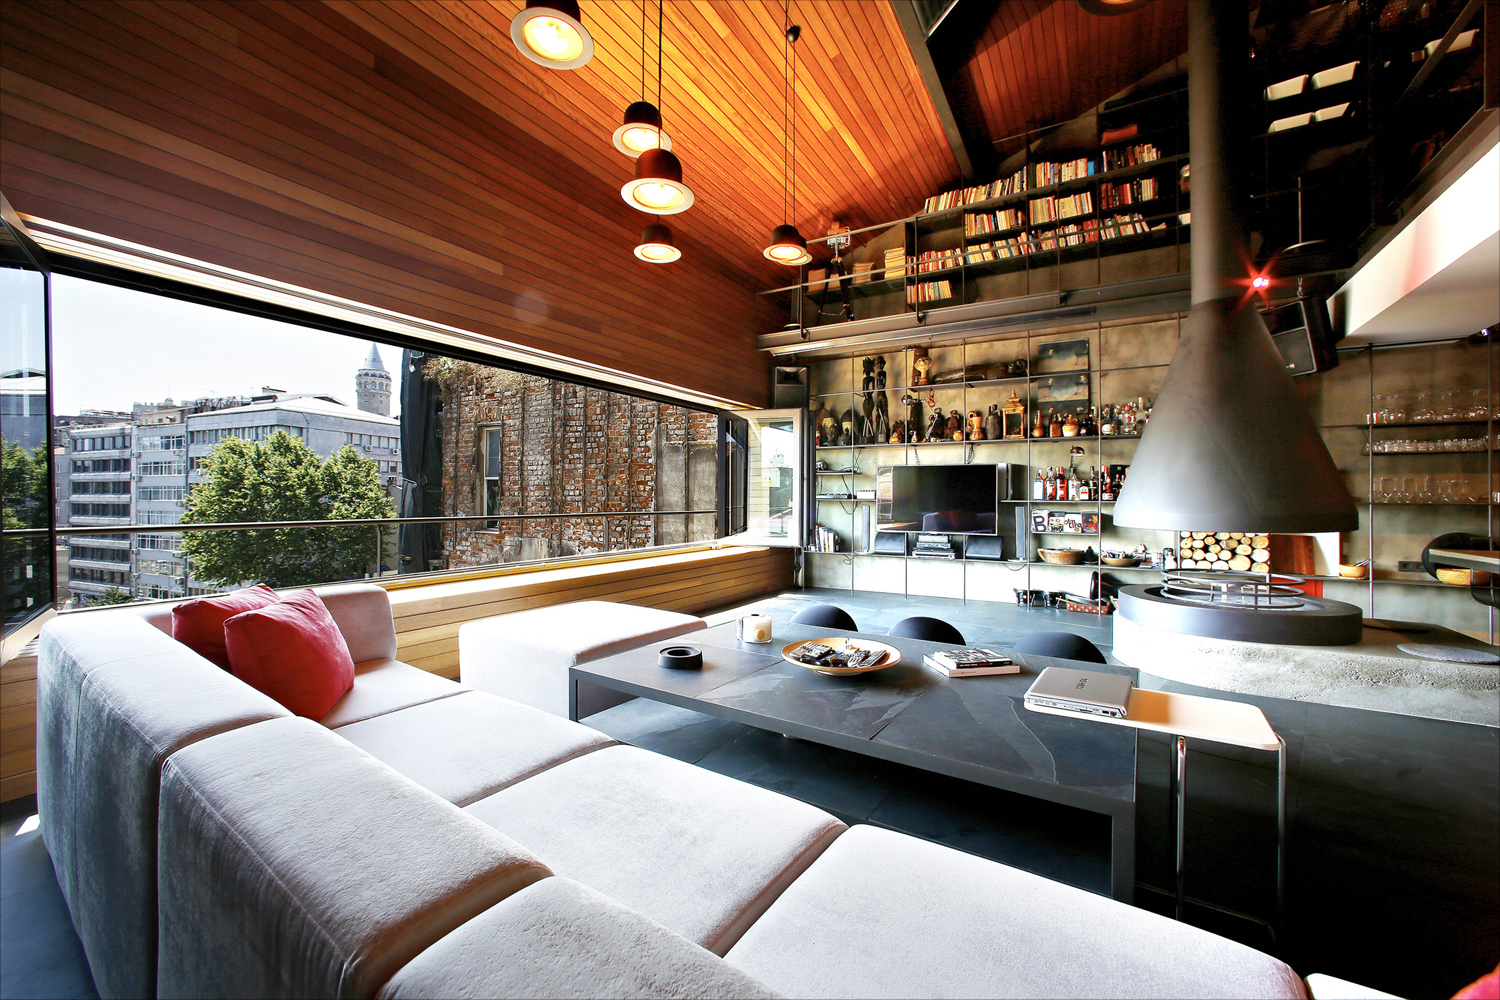 The Ultimate Bachelor Loft In The Heart Of Istanbul Idesignarch Interior Design